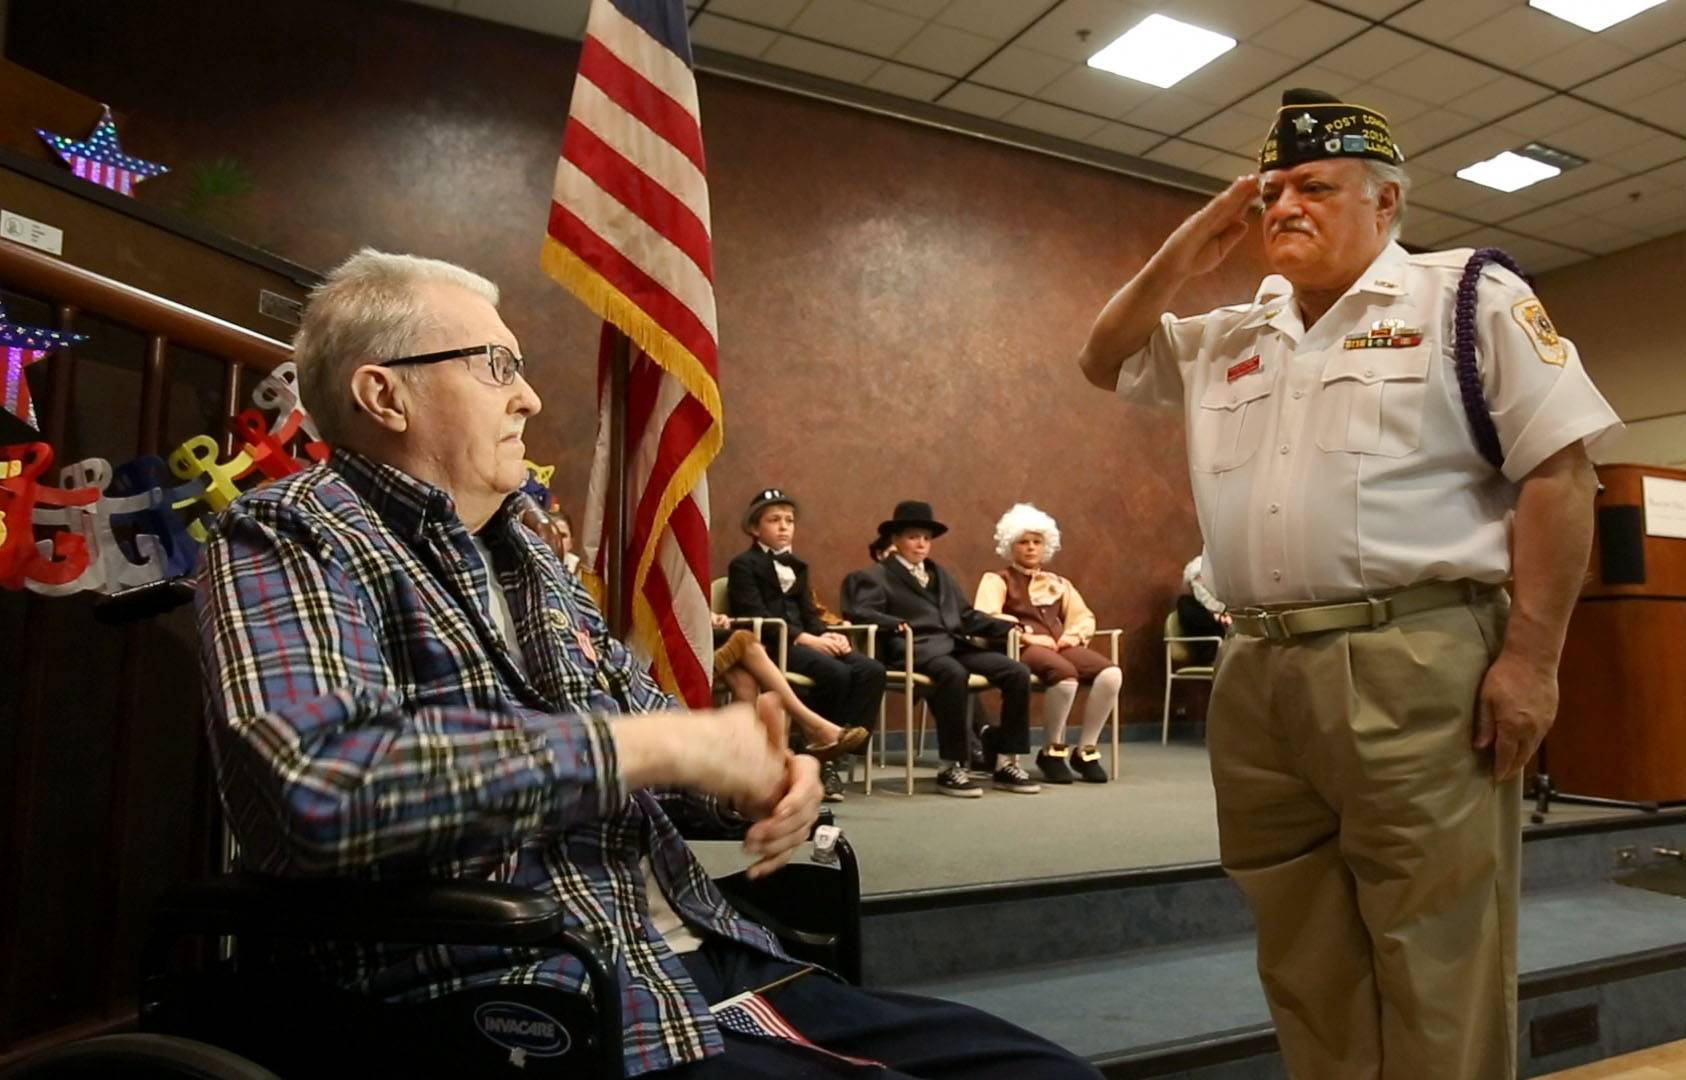 VFW Post 5815 Cmdr. Michelangelo Di Cosola, right, salutes World War II veteran Jim Pfafflin Friday in Lombard, shortly after he was presented with medals that recognized his service in the U.S. Merchant Marine more than 65 years ago.